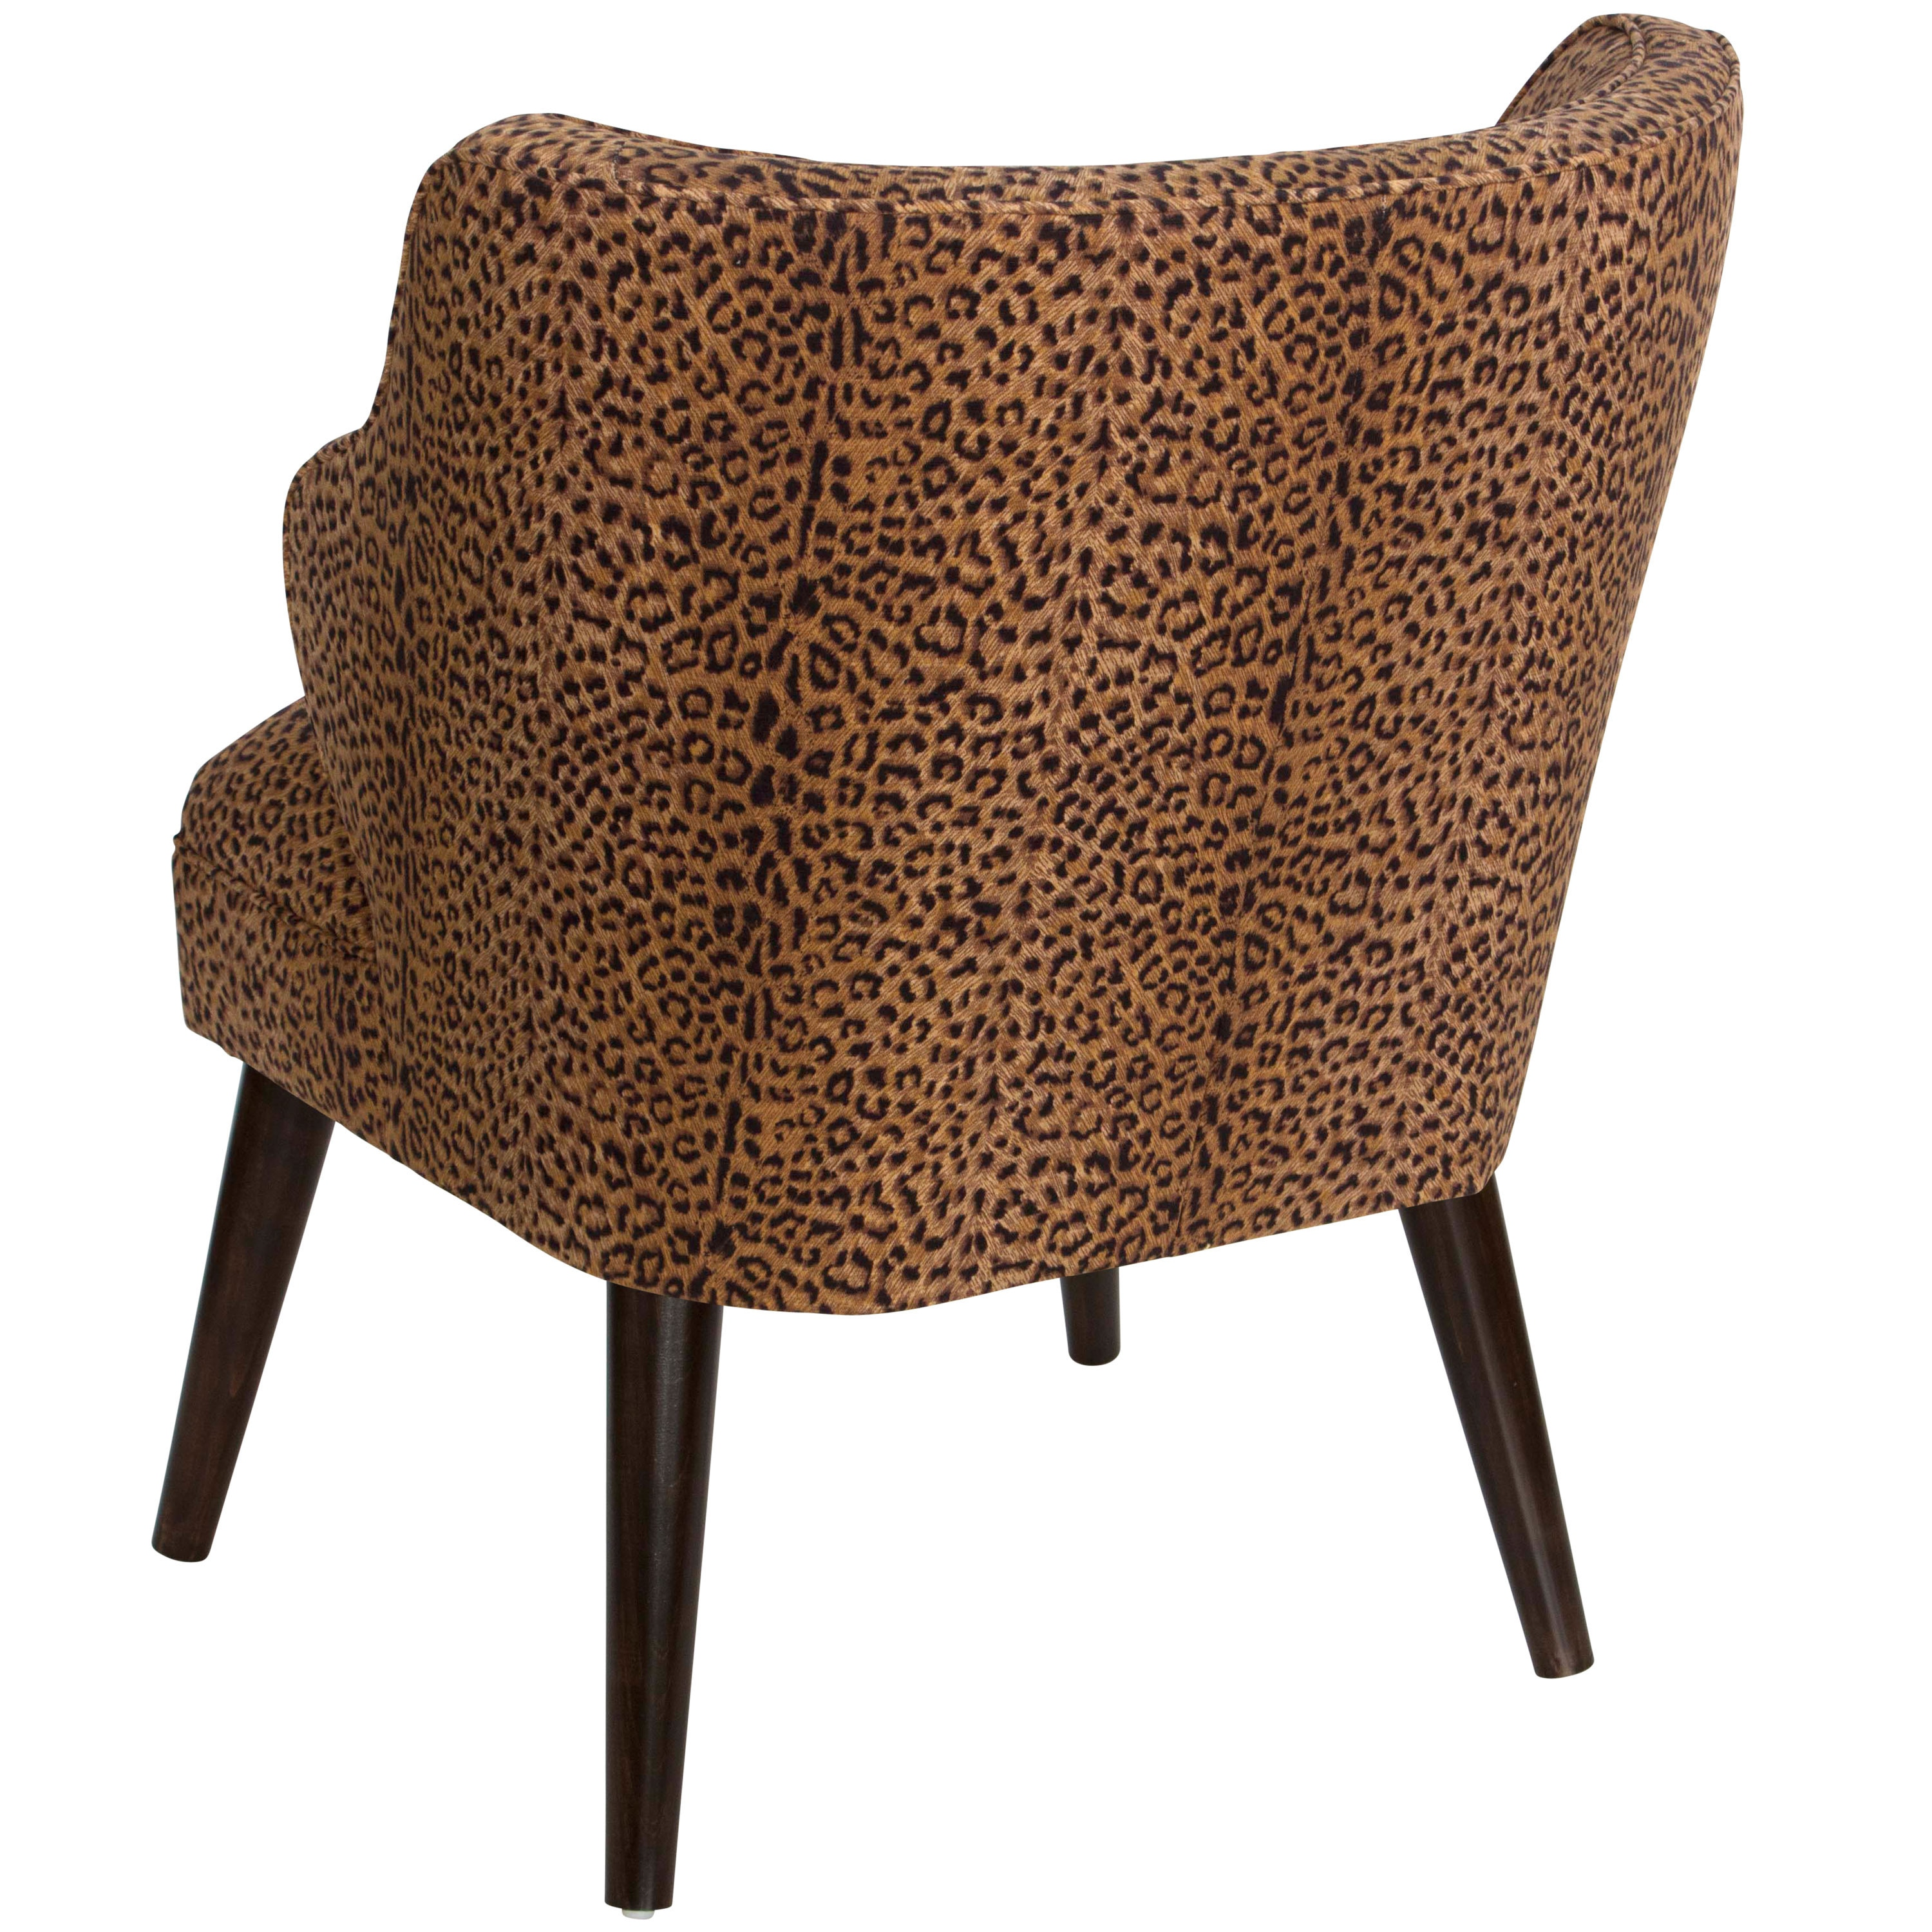 Skyline Furniture Cheetah Earth Cotton Upholstered Chair N A